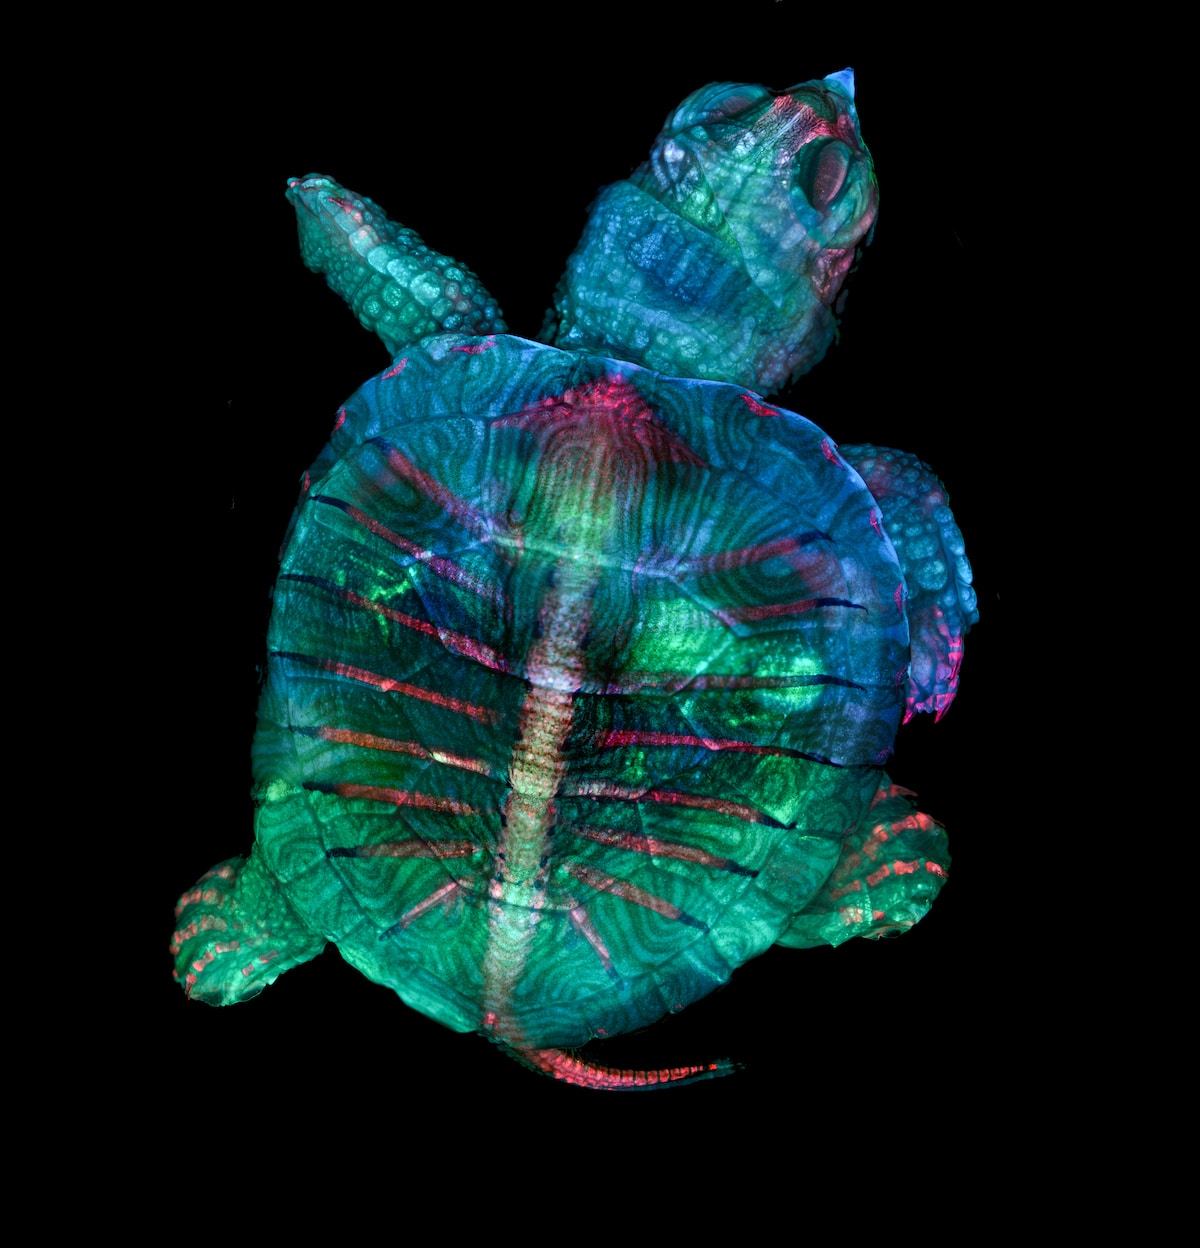 Fluorescent turtle embryo - Winner